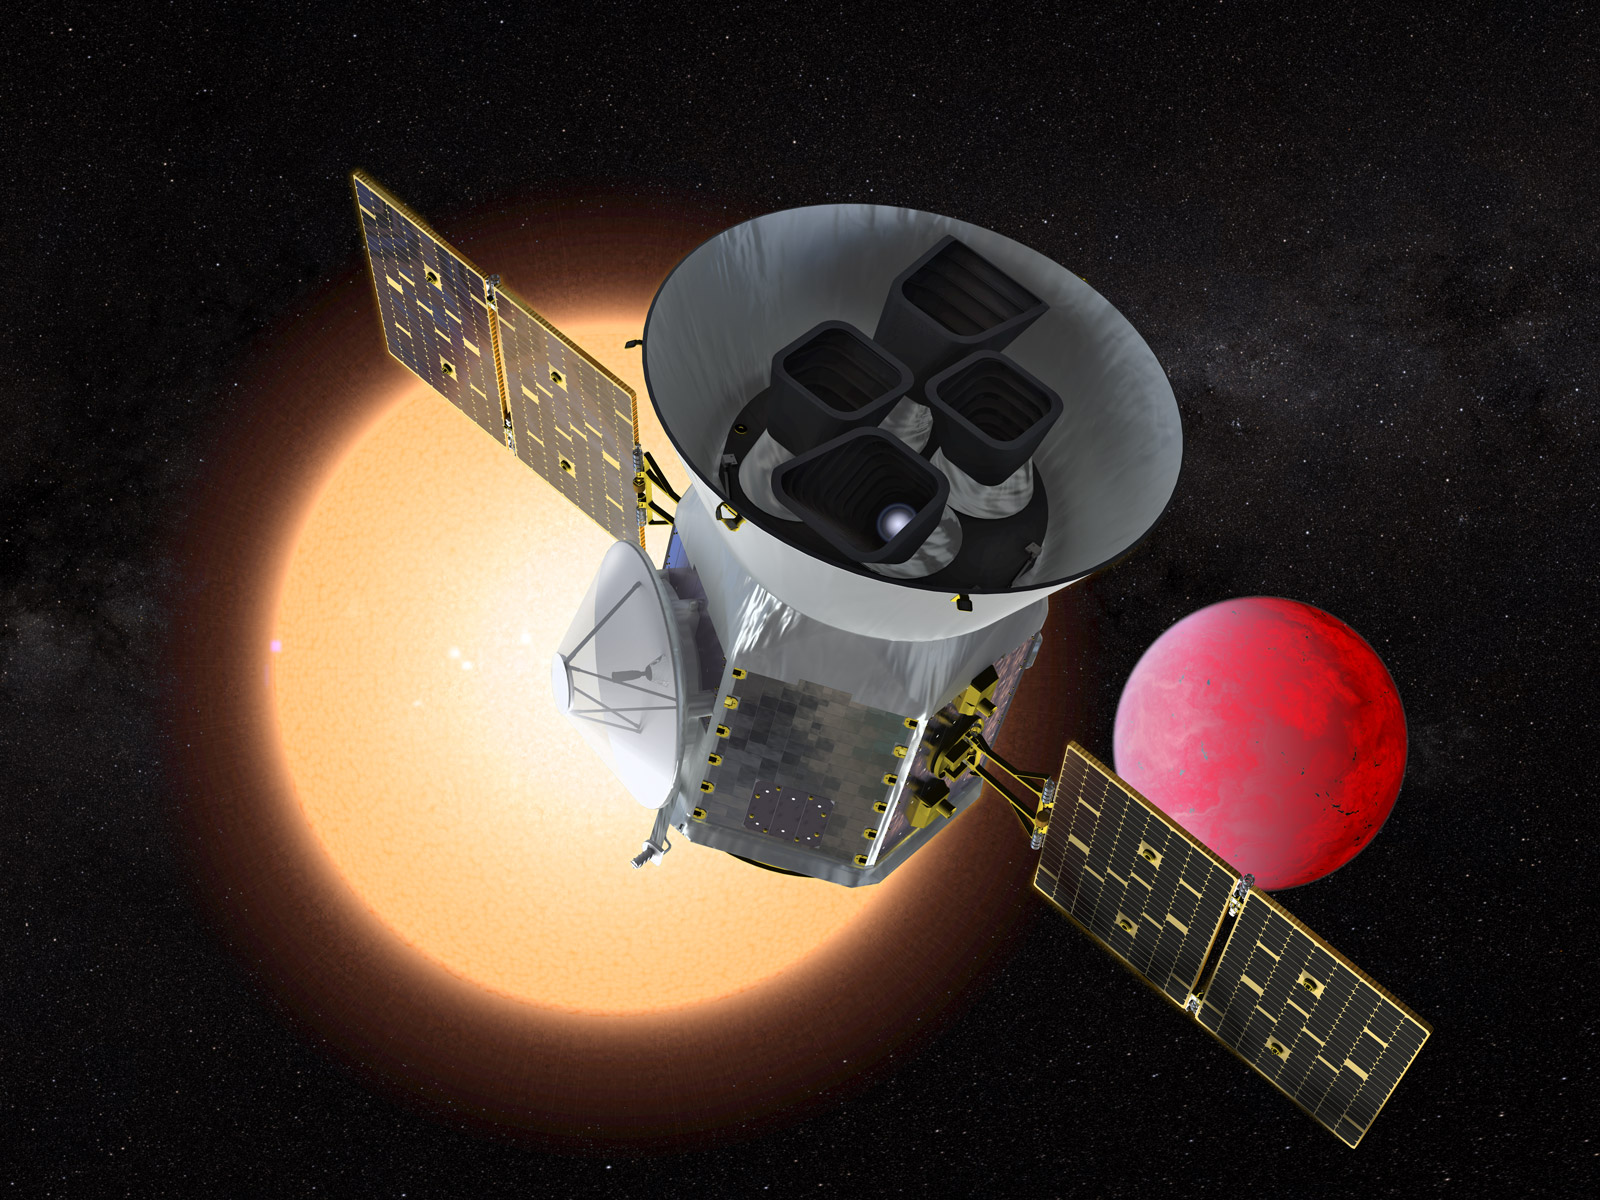 Distant alien planets might be changed into darkish matter detectors Z2ZJD9ZhcWpqX6b8RPQAu5